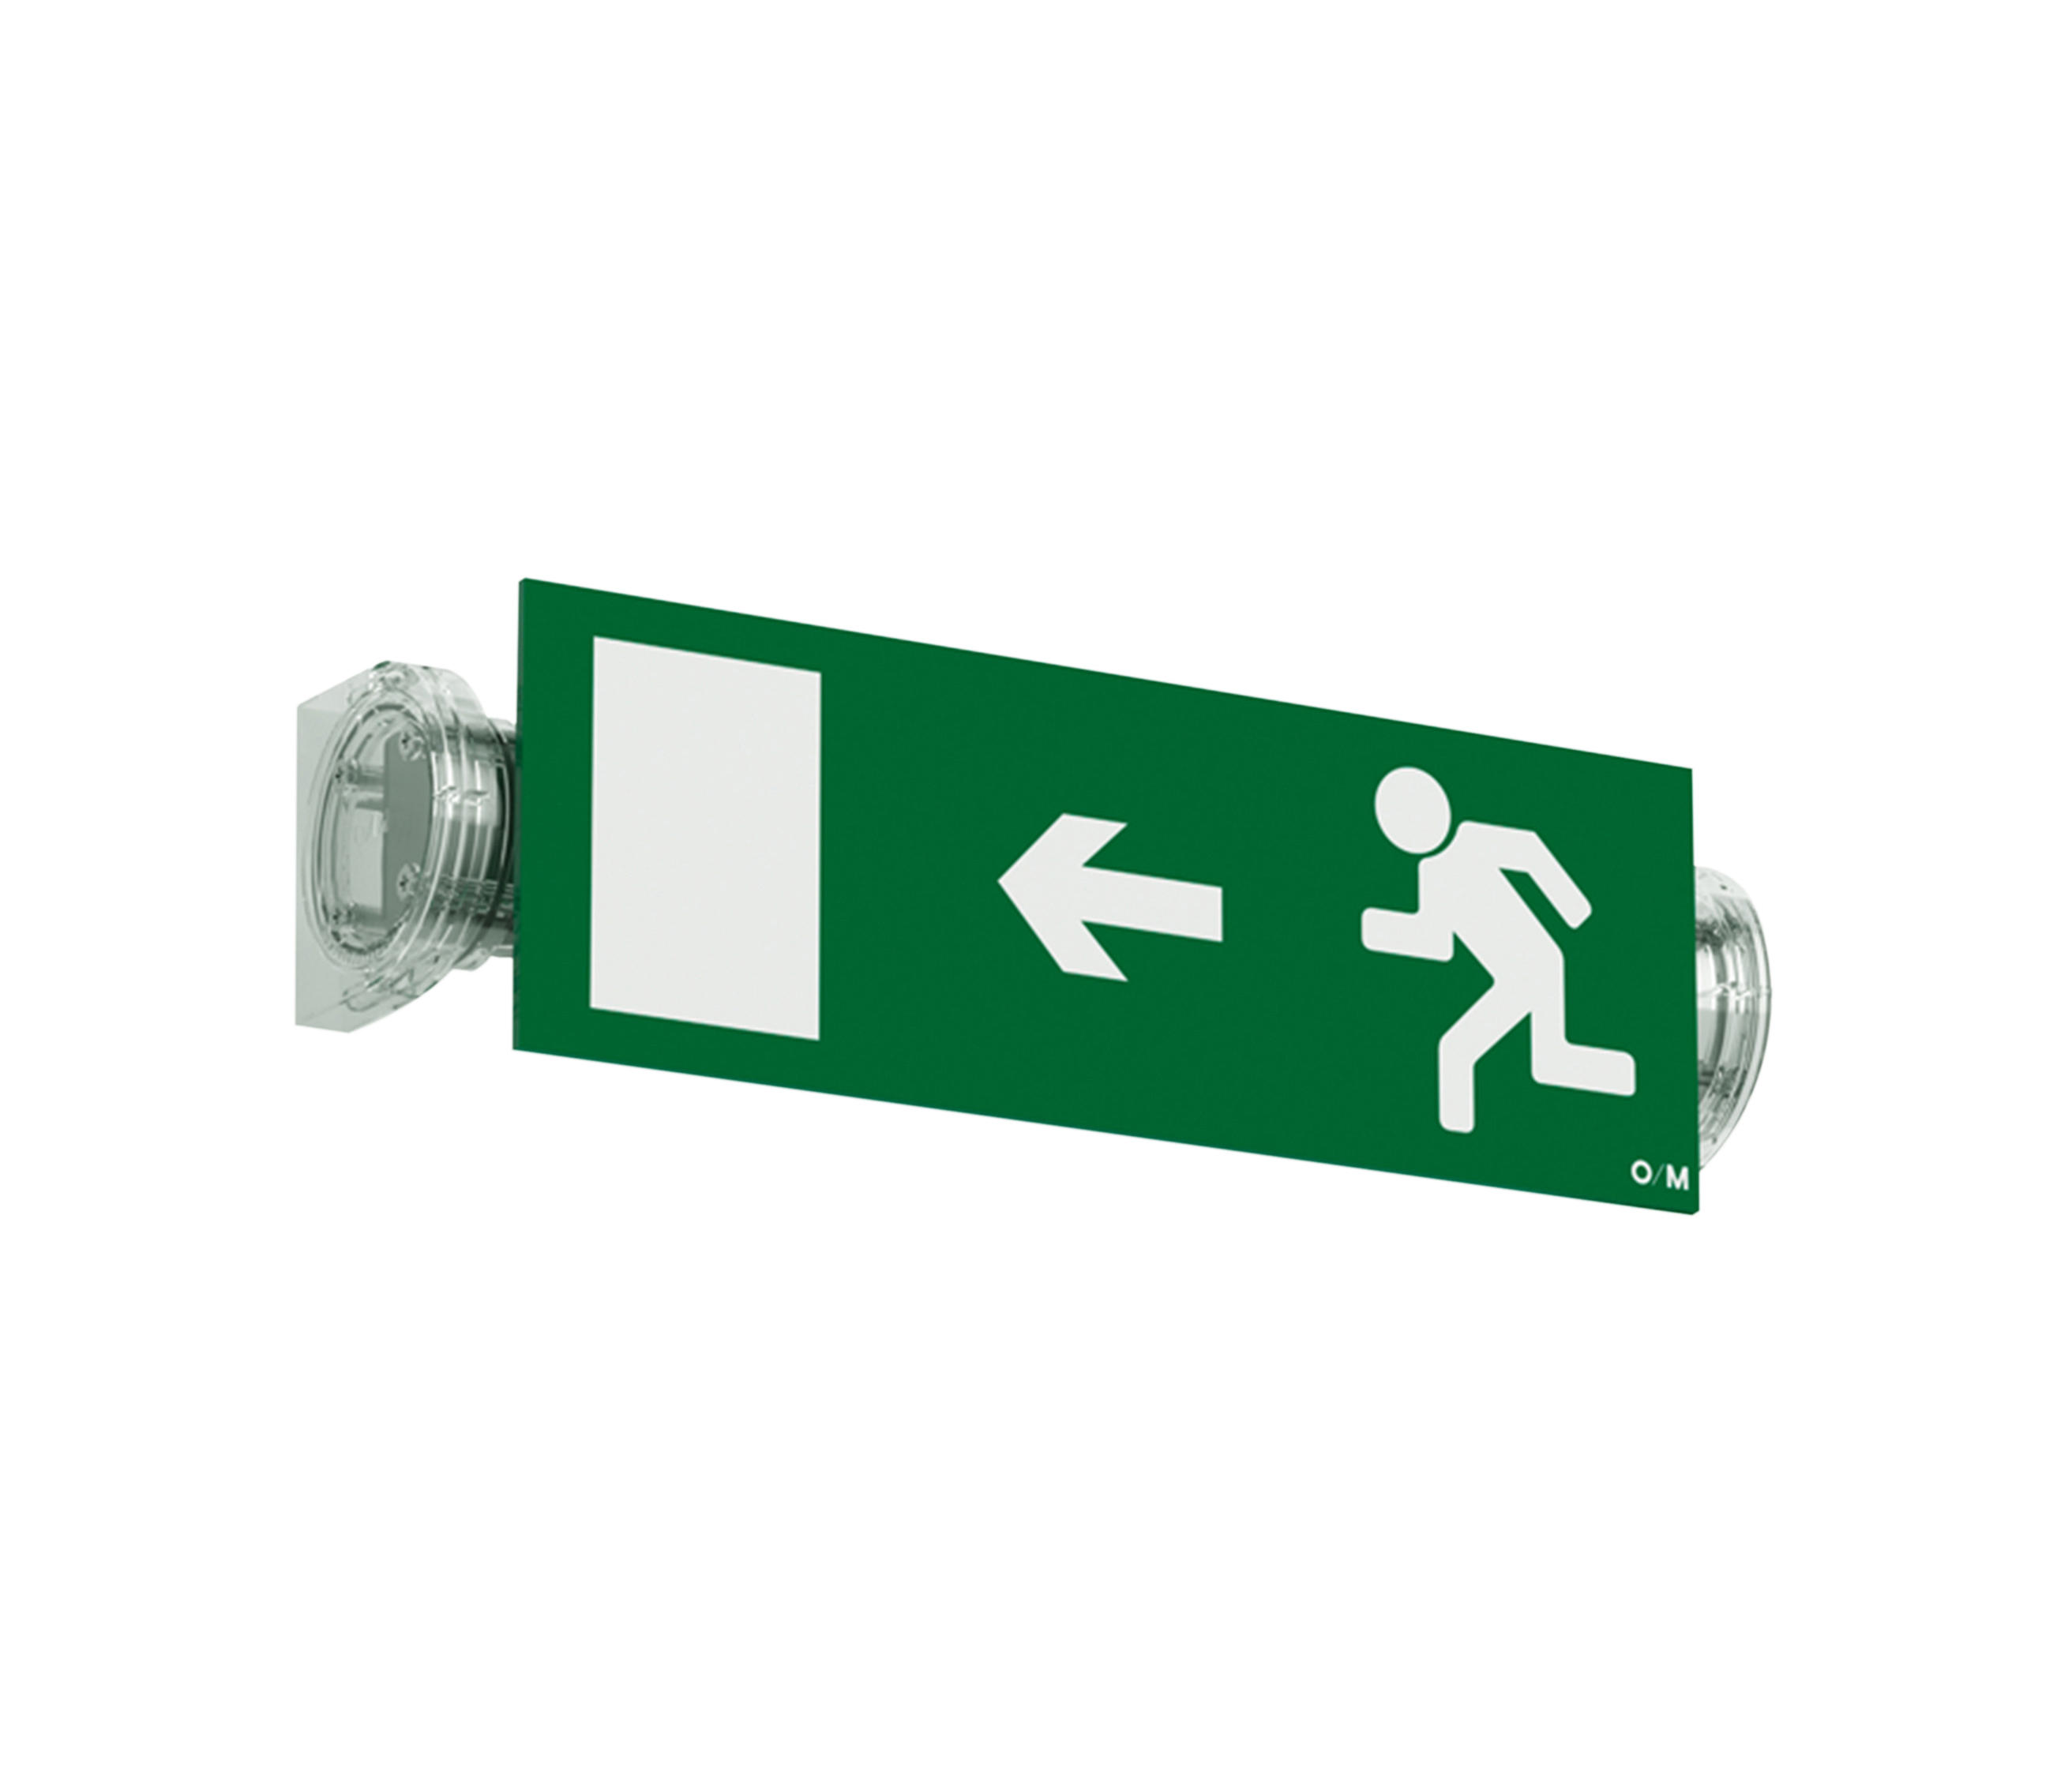 BS - Wall-mounted emergency lights from O/M Architonic